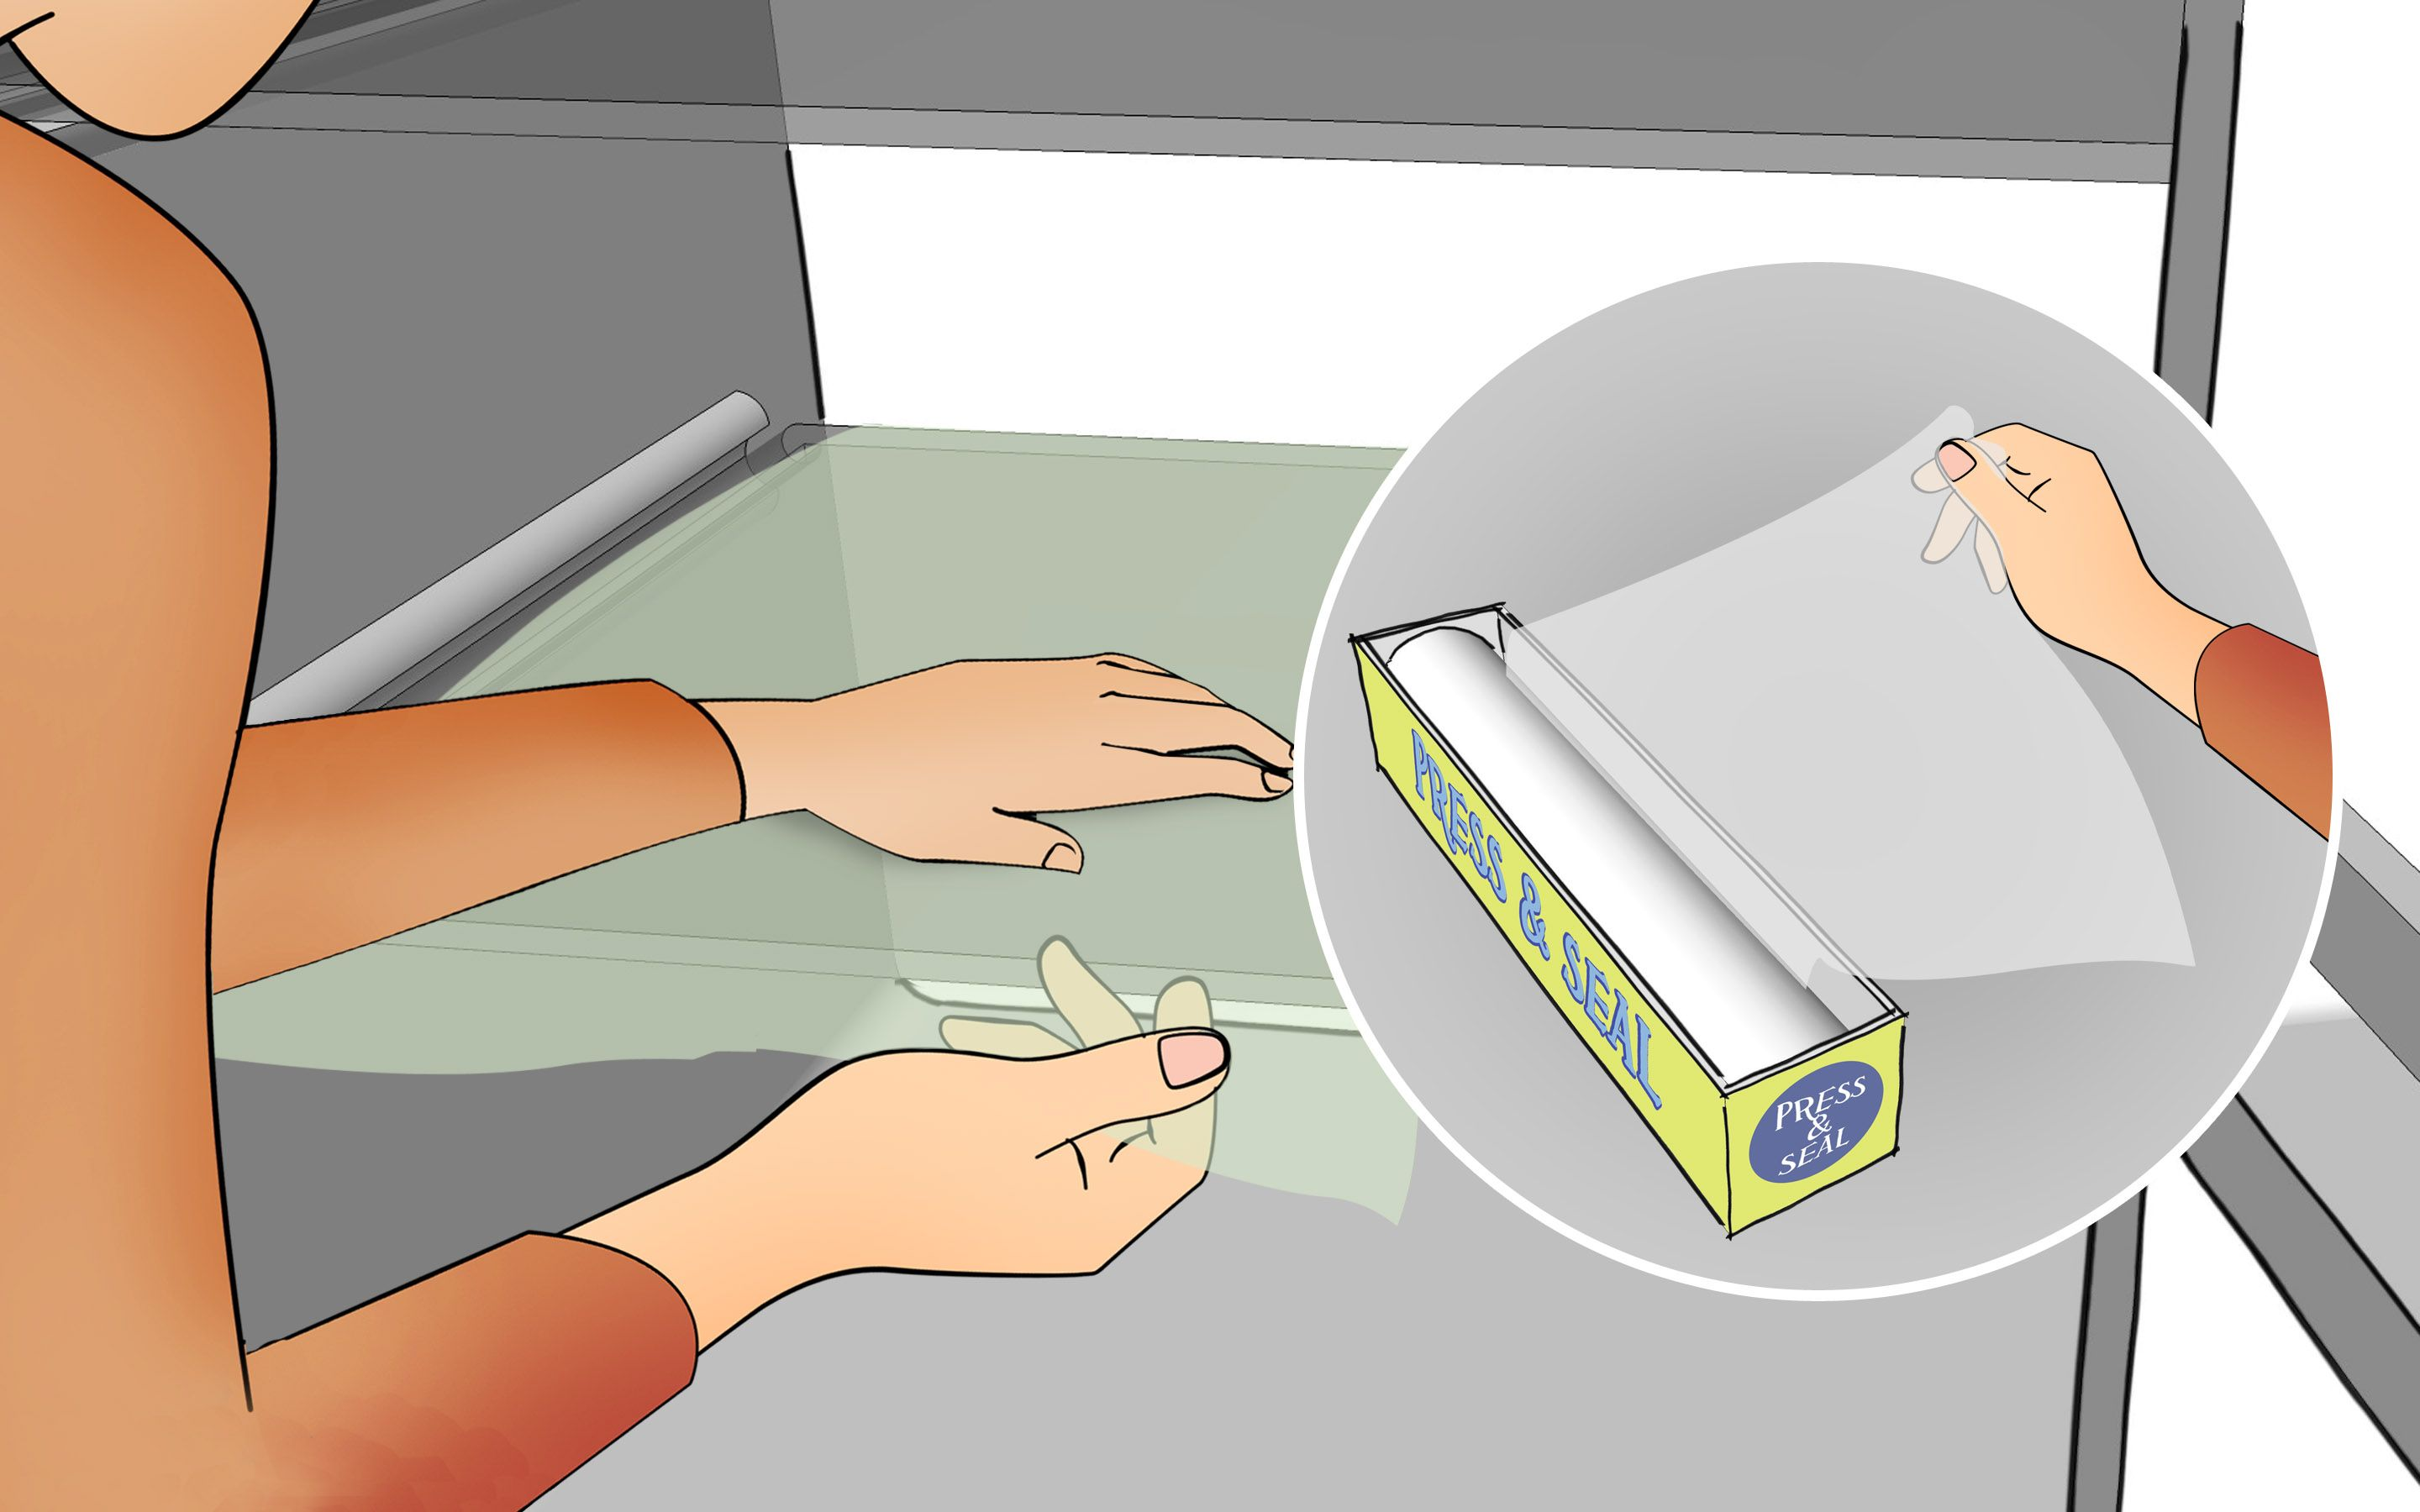 Cover Refrigerator Shelves in Plastic Wrap   wikiHow Tips